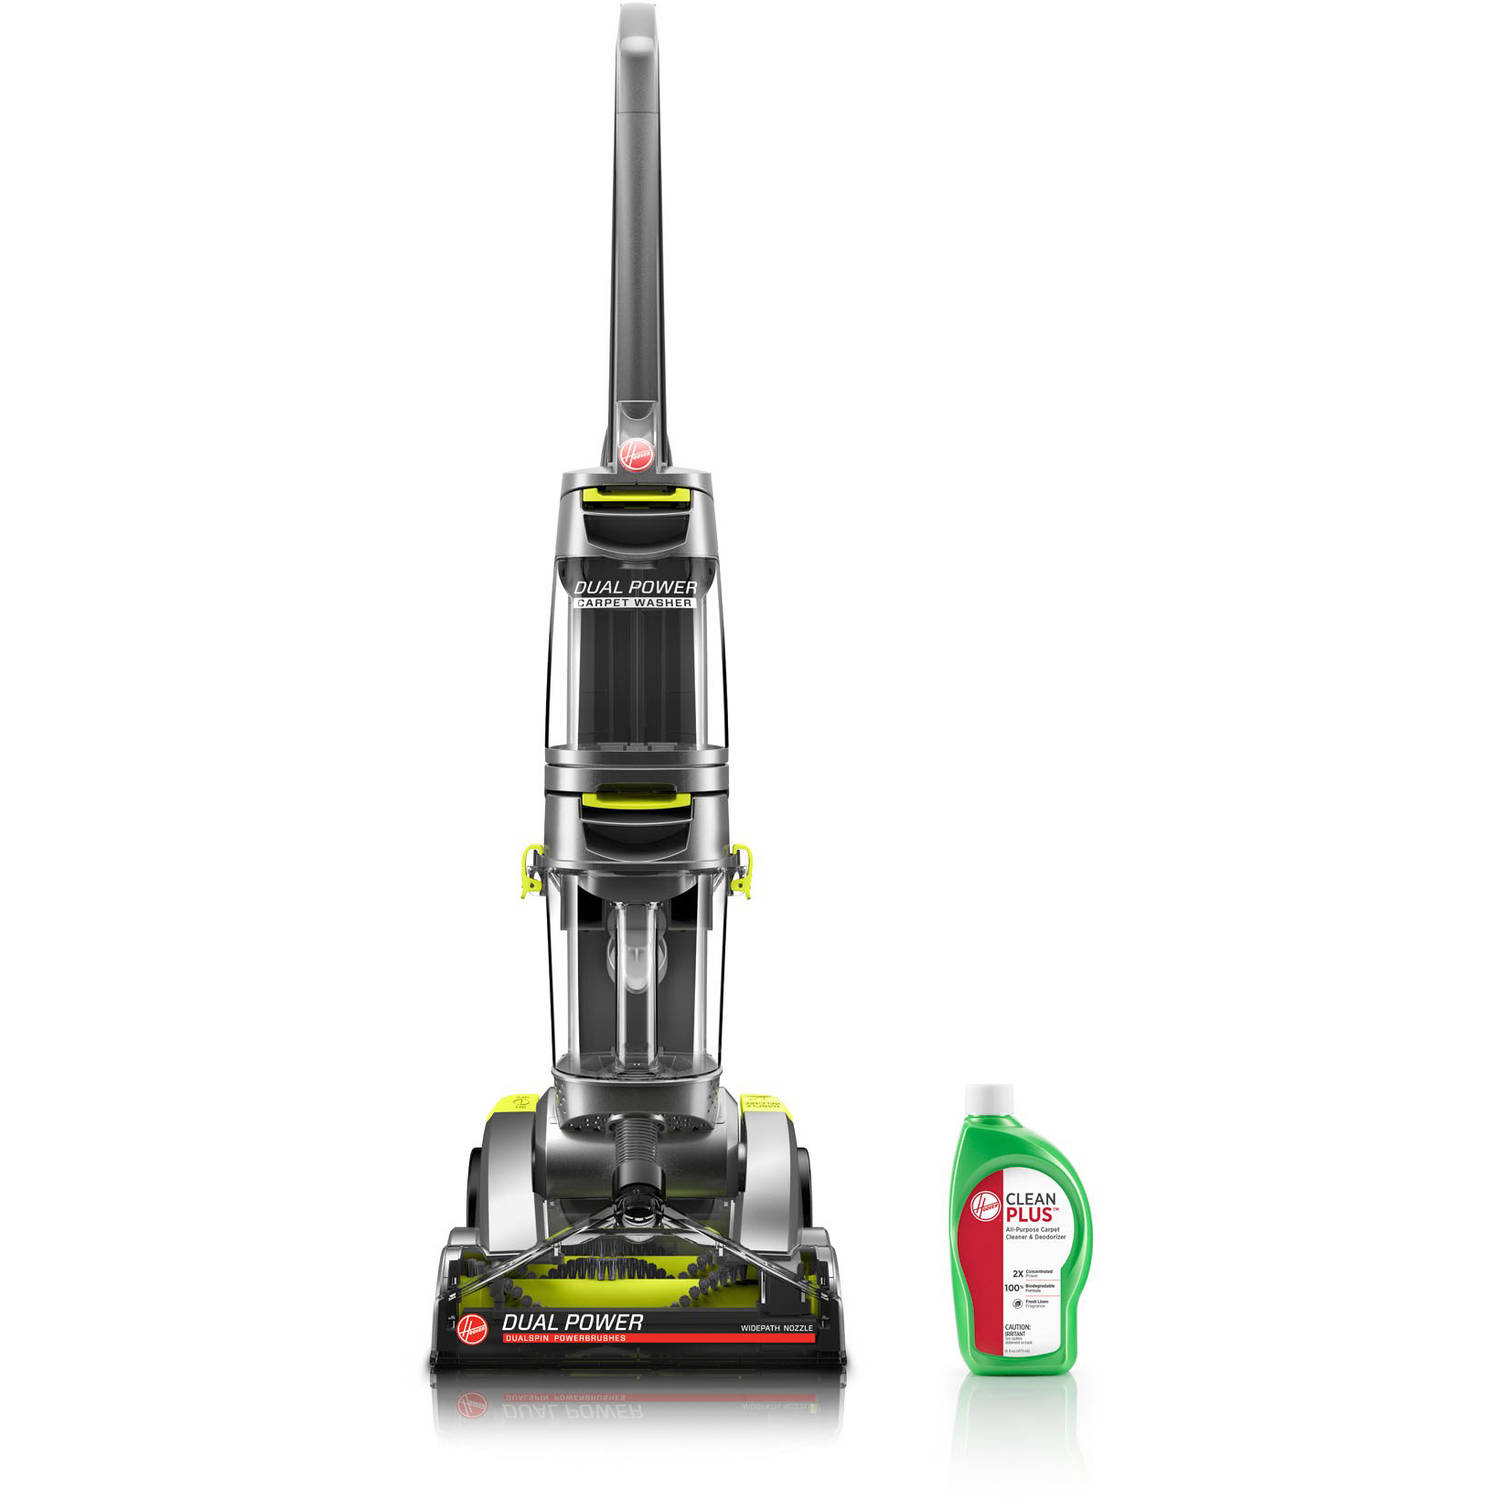 0c4893cb dbb9 4eab 9933 67bd854e555c_1.98ea1ba9c27fe5e345821074cb5779ea carpet steam cleaners walmart com  at fashall.co